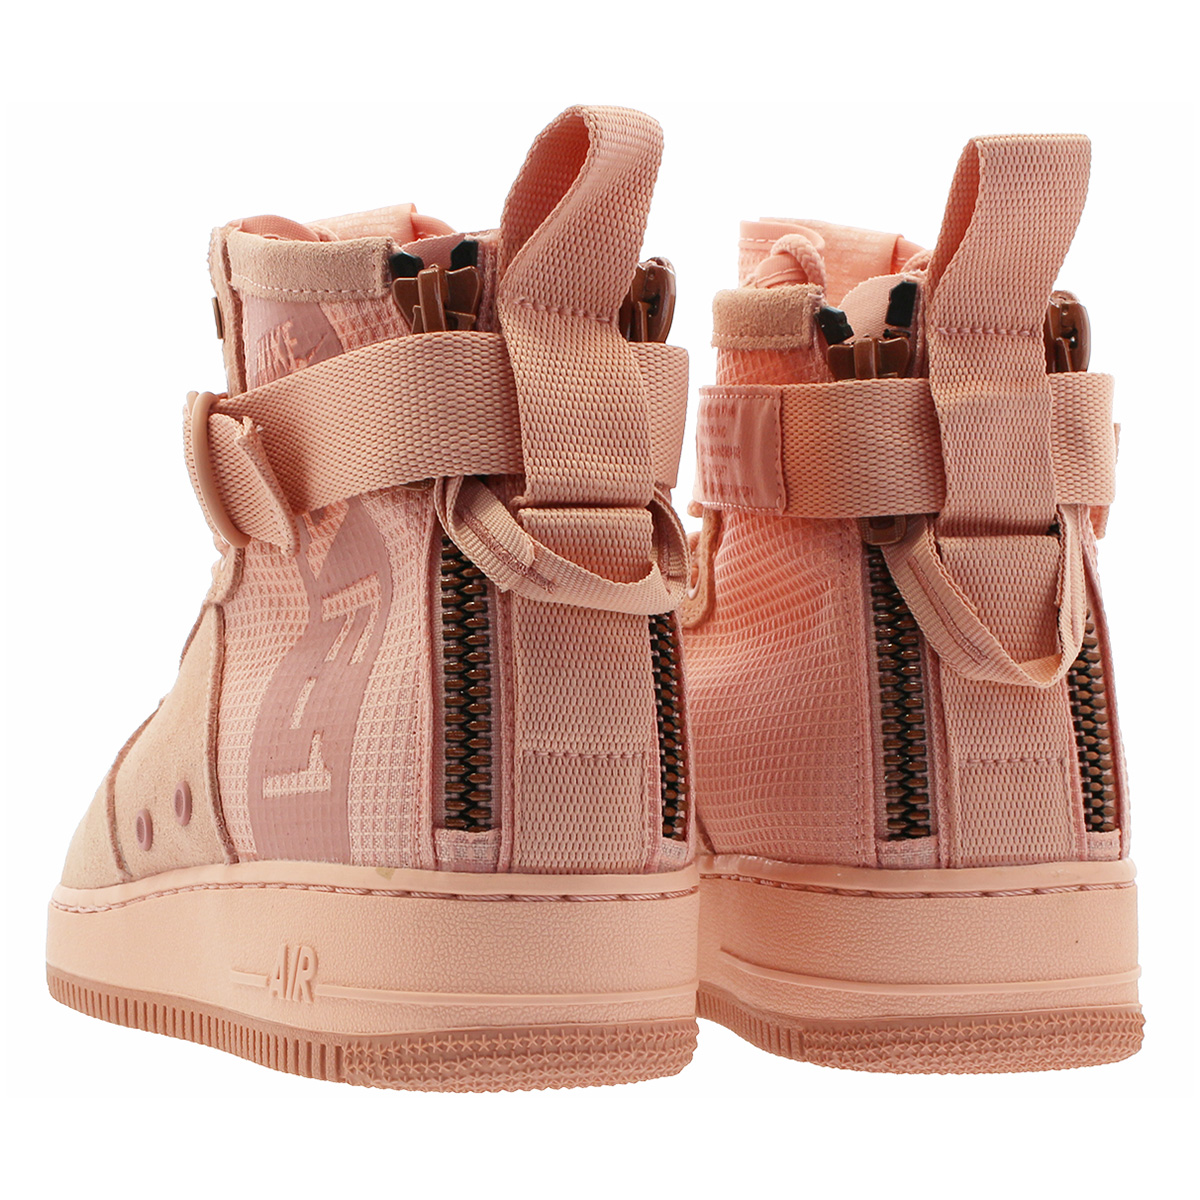 NIKE SPECIAL FIELD AIR FORCE 1 MID SUEDE Nike special field air force 1 mid  suede CORAL STARDUST/RED STARDUST